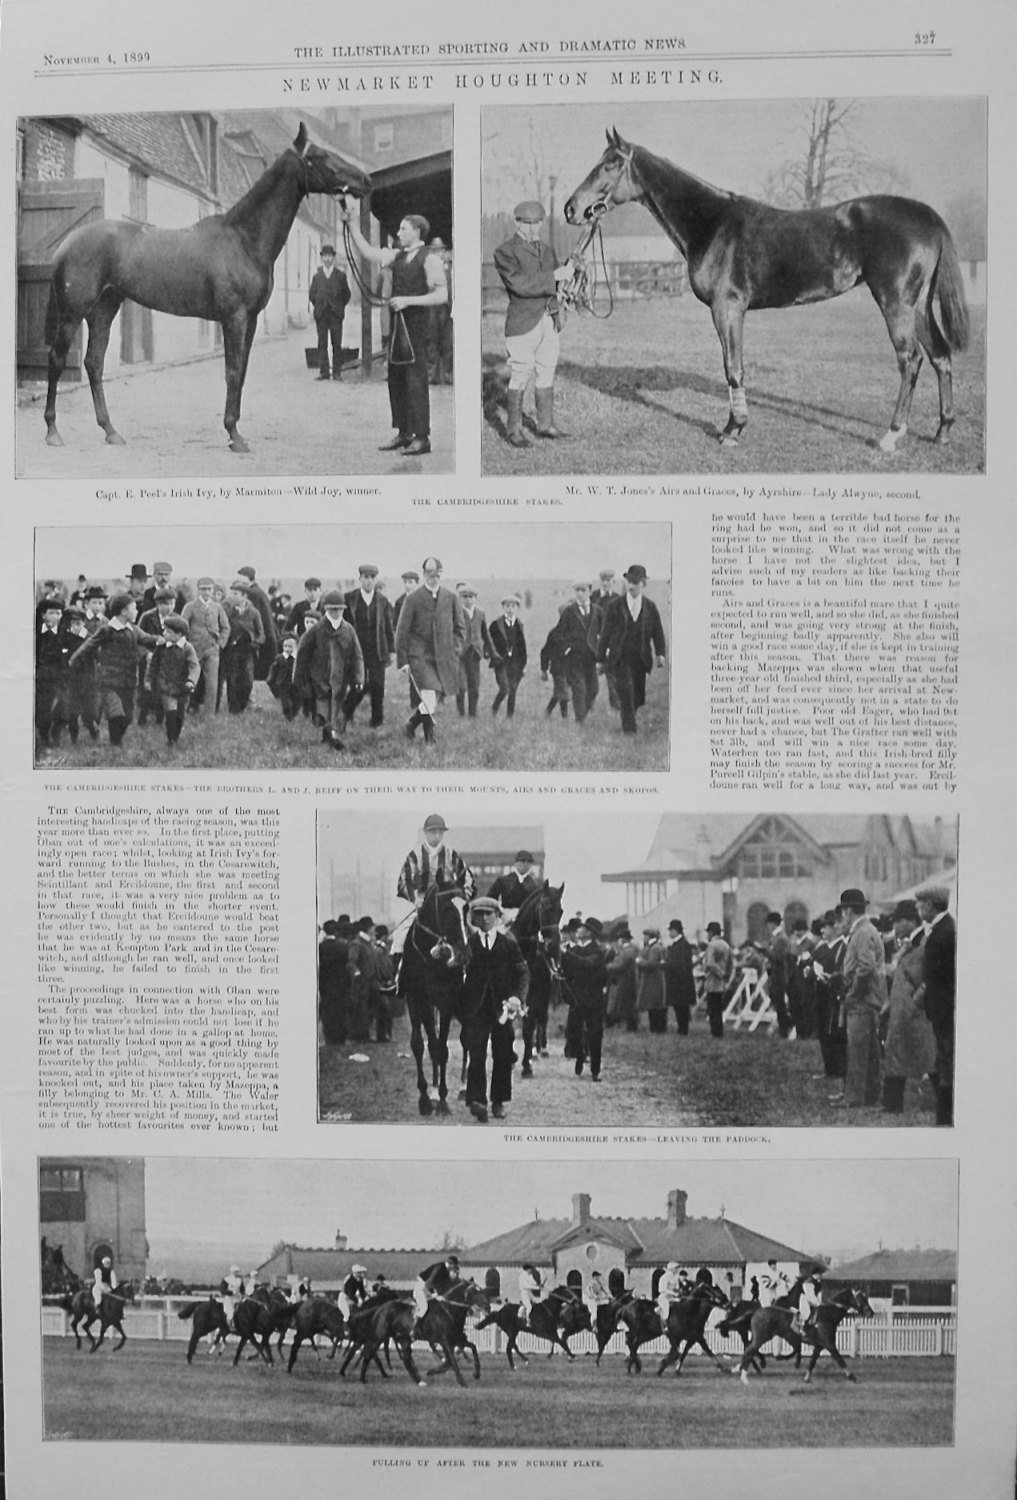 Newmarket Houghton Meeting. 1899